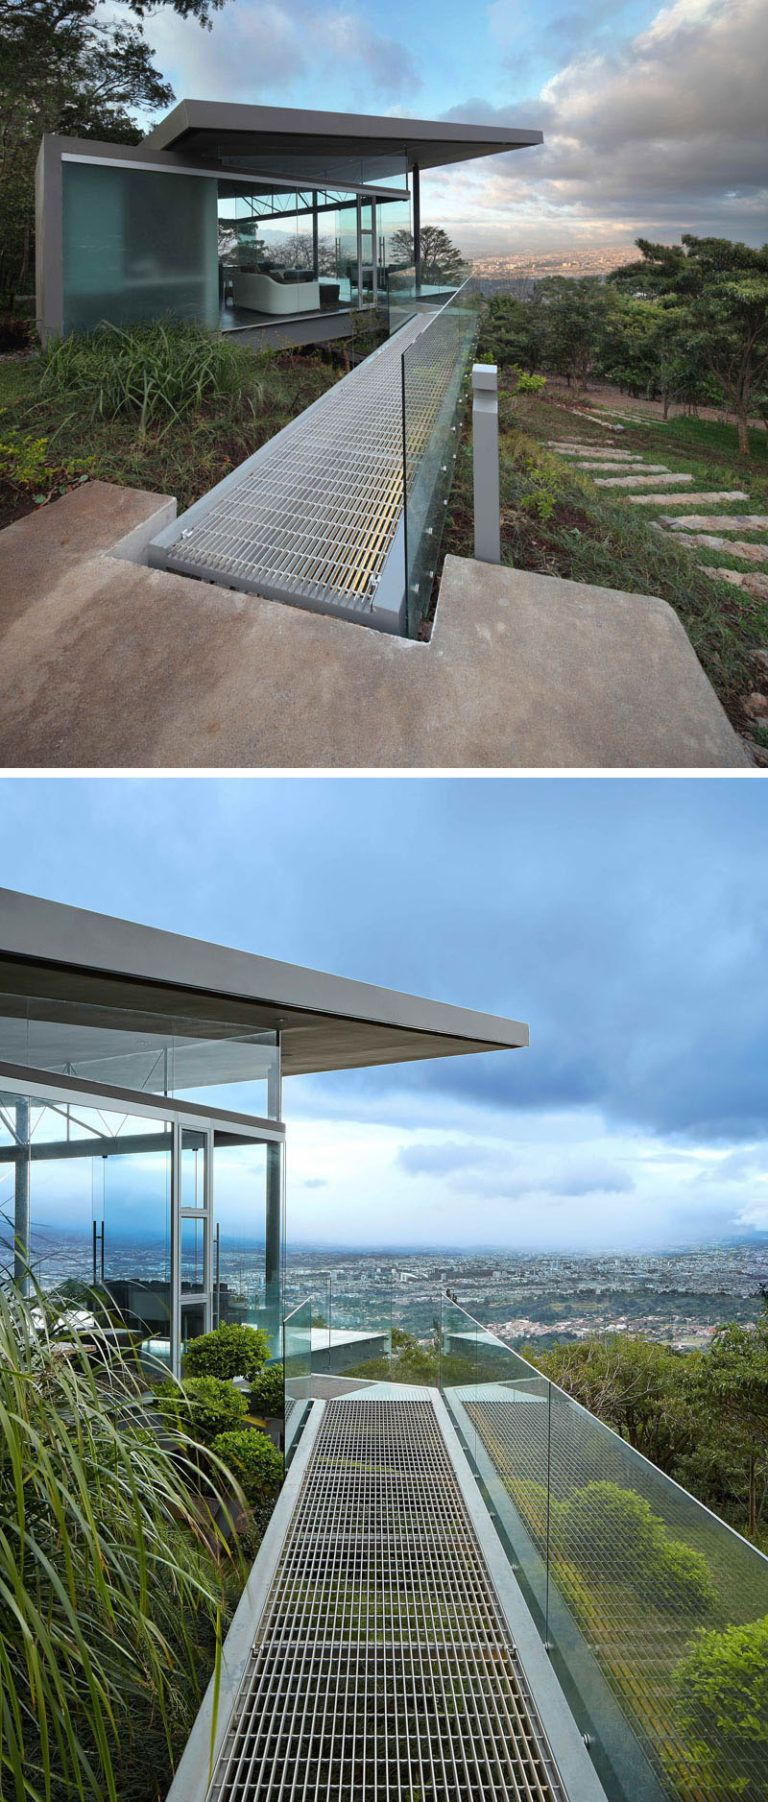 This Room Designed For Entertaining Enjoys Amazing Views Of The City Below